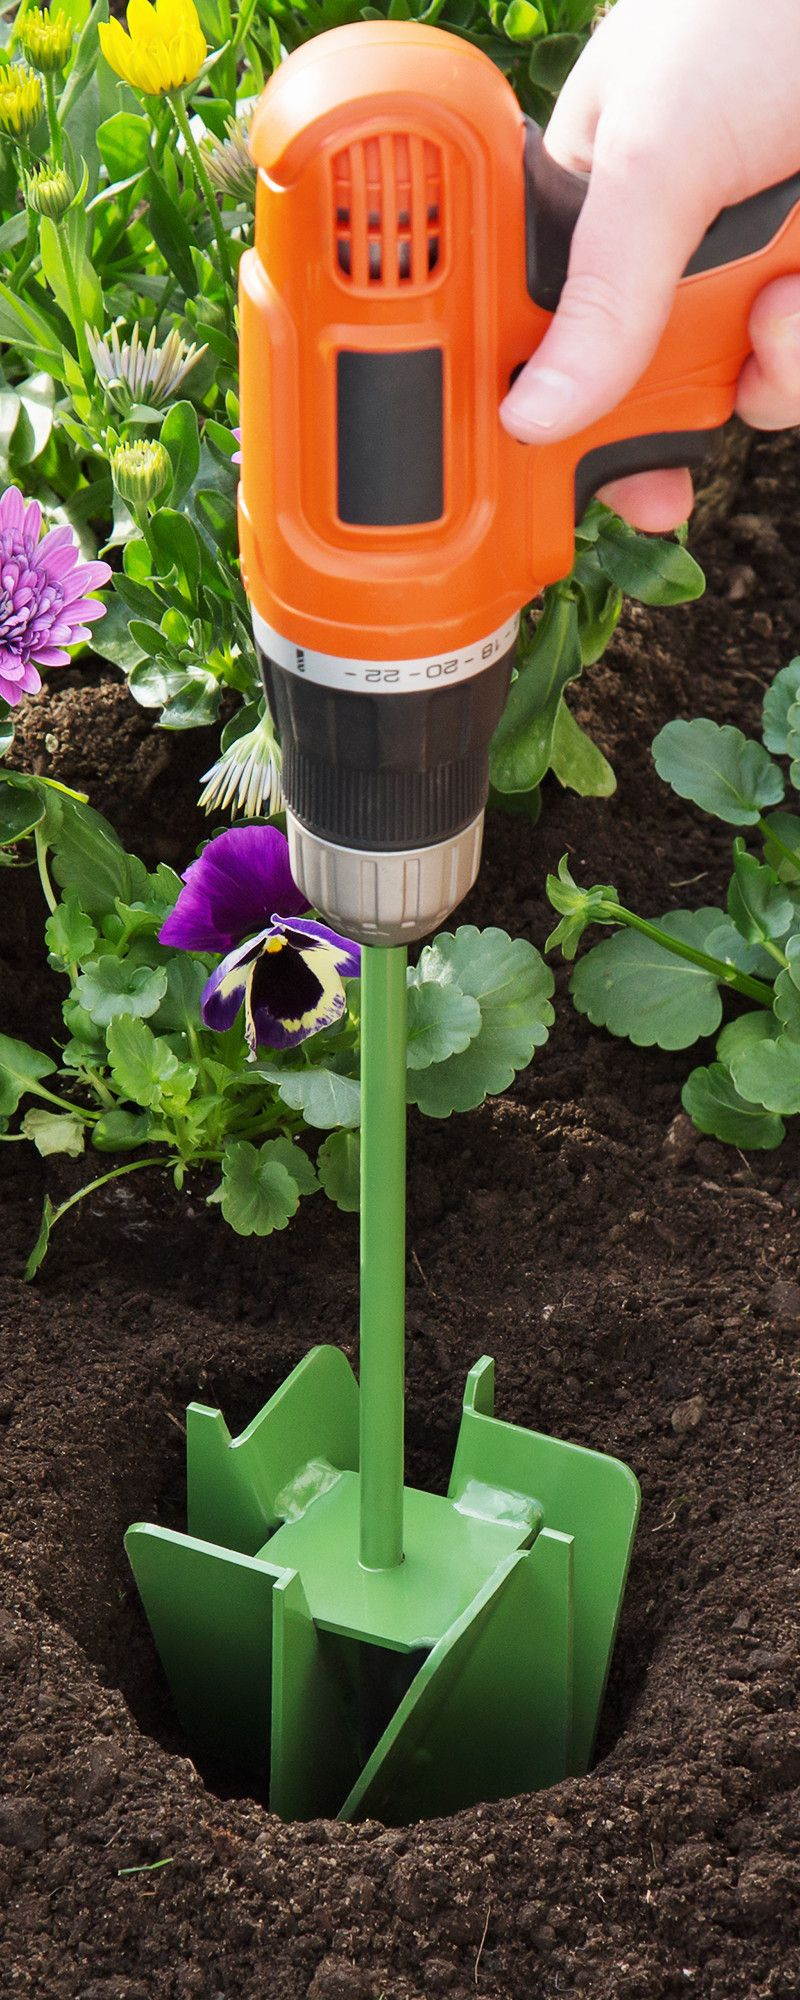 The Maxbit Garden Hole Digging Extension With Images Garden